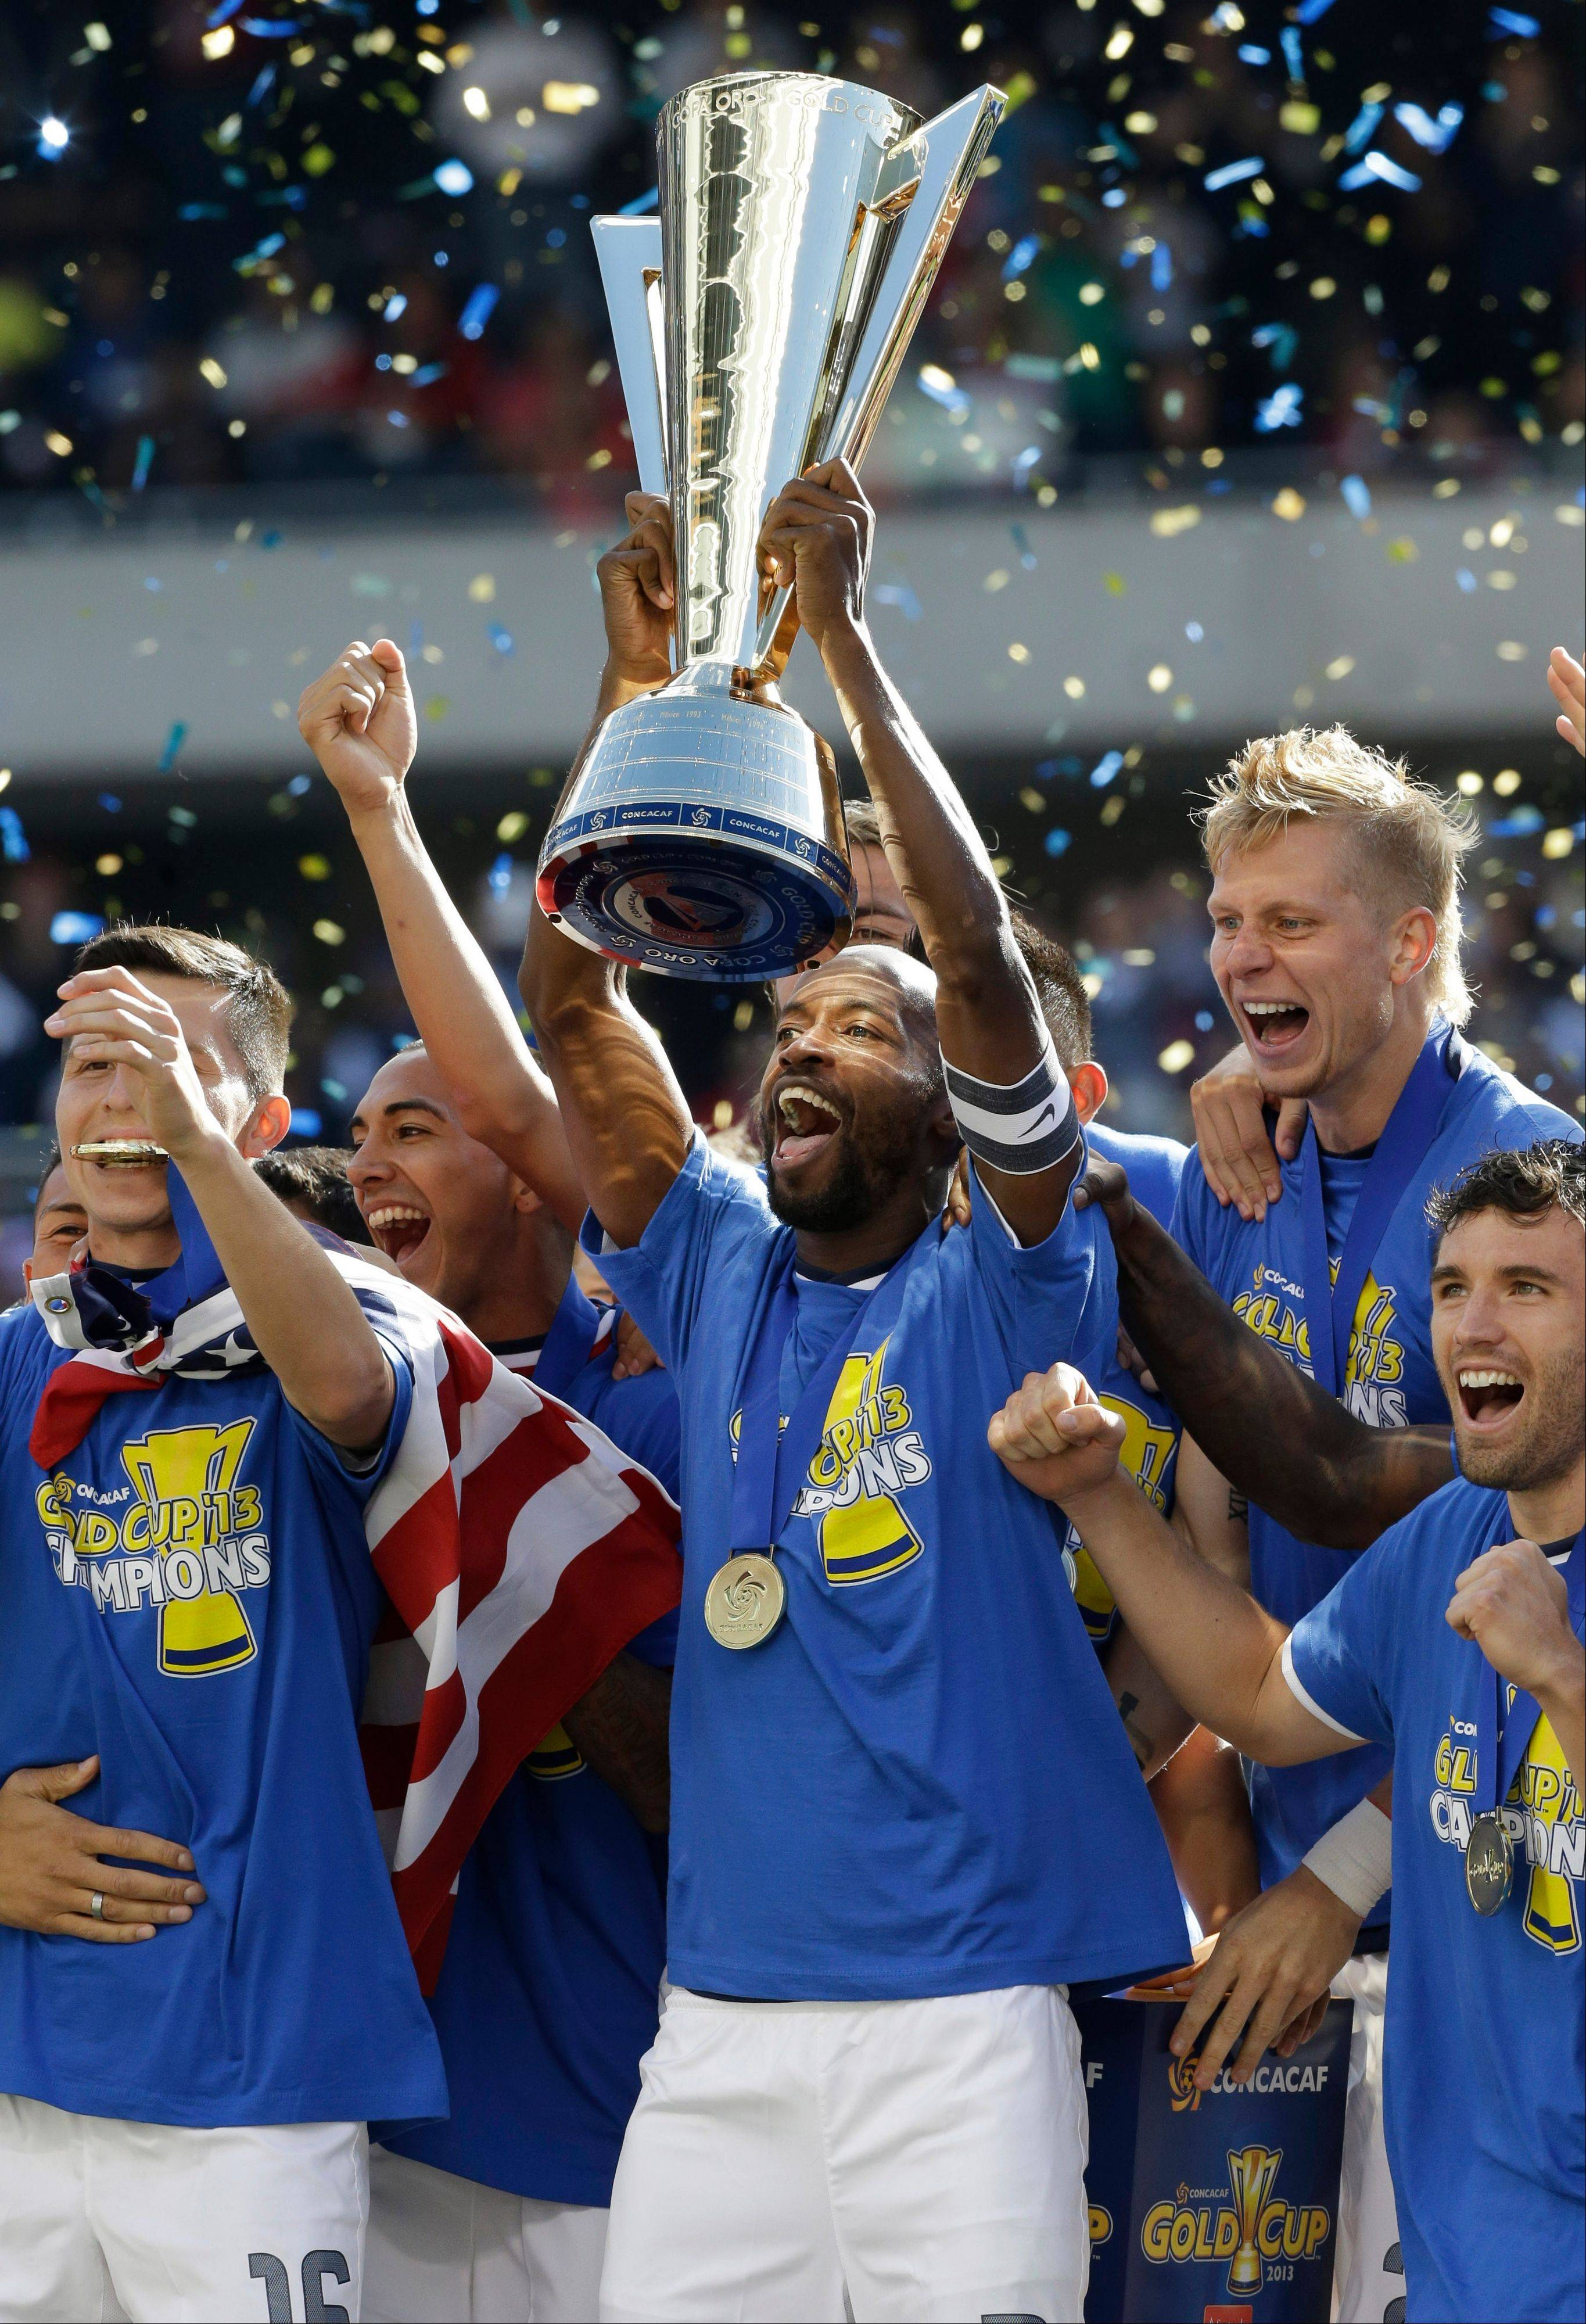 United States defender DaMarcus Beasley (7), center, holds the trophy as he celebrates with teammates after defeating Panama 1-0 during the CONCACAF Gold Cup final soccer match at Soldier Field on Sunday.